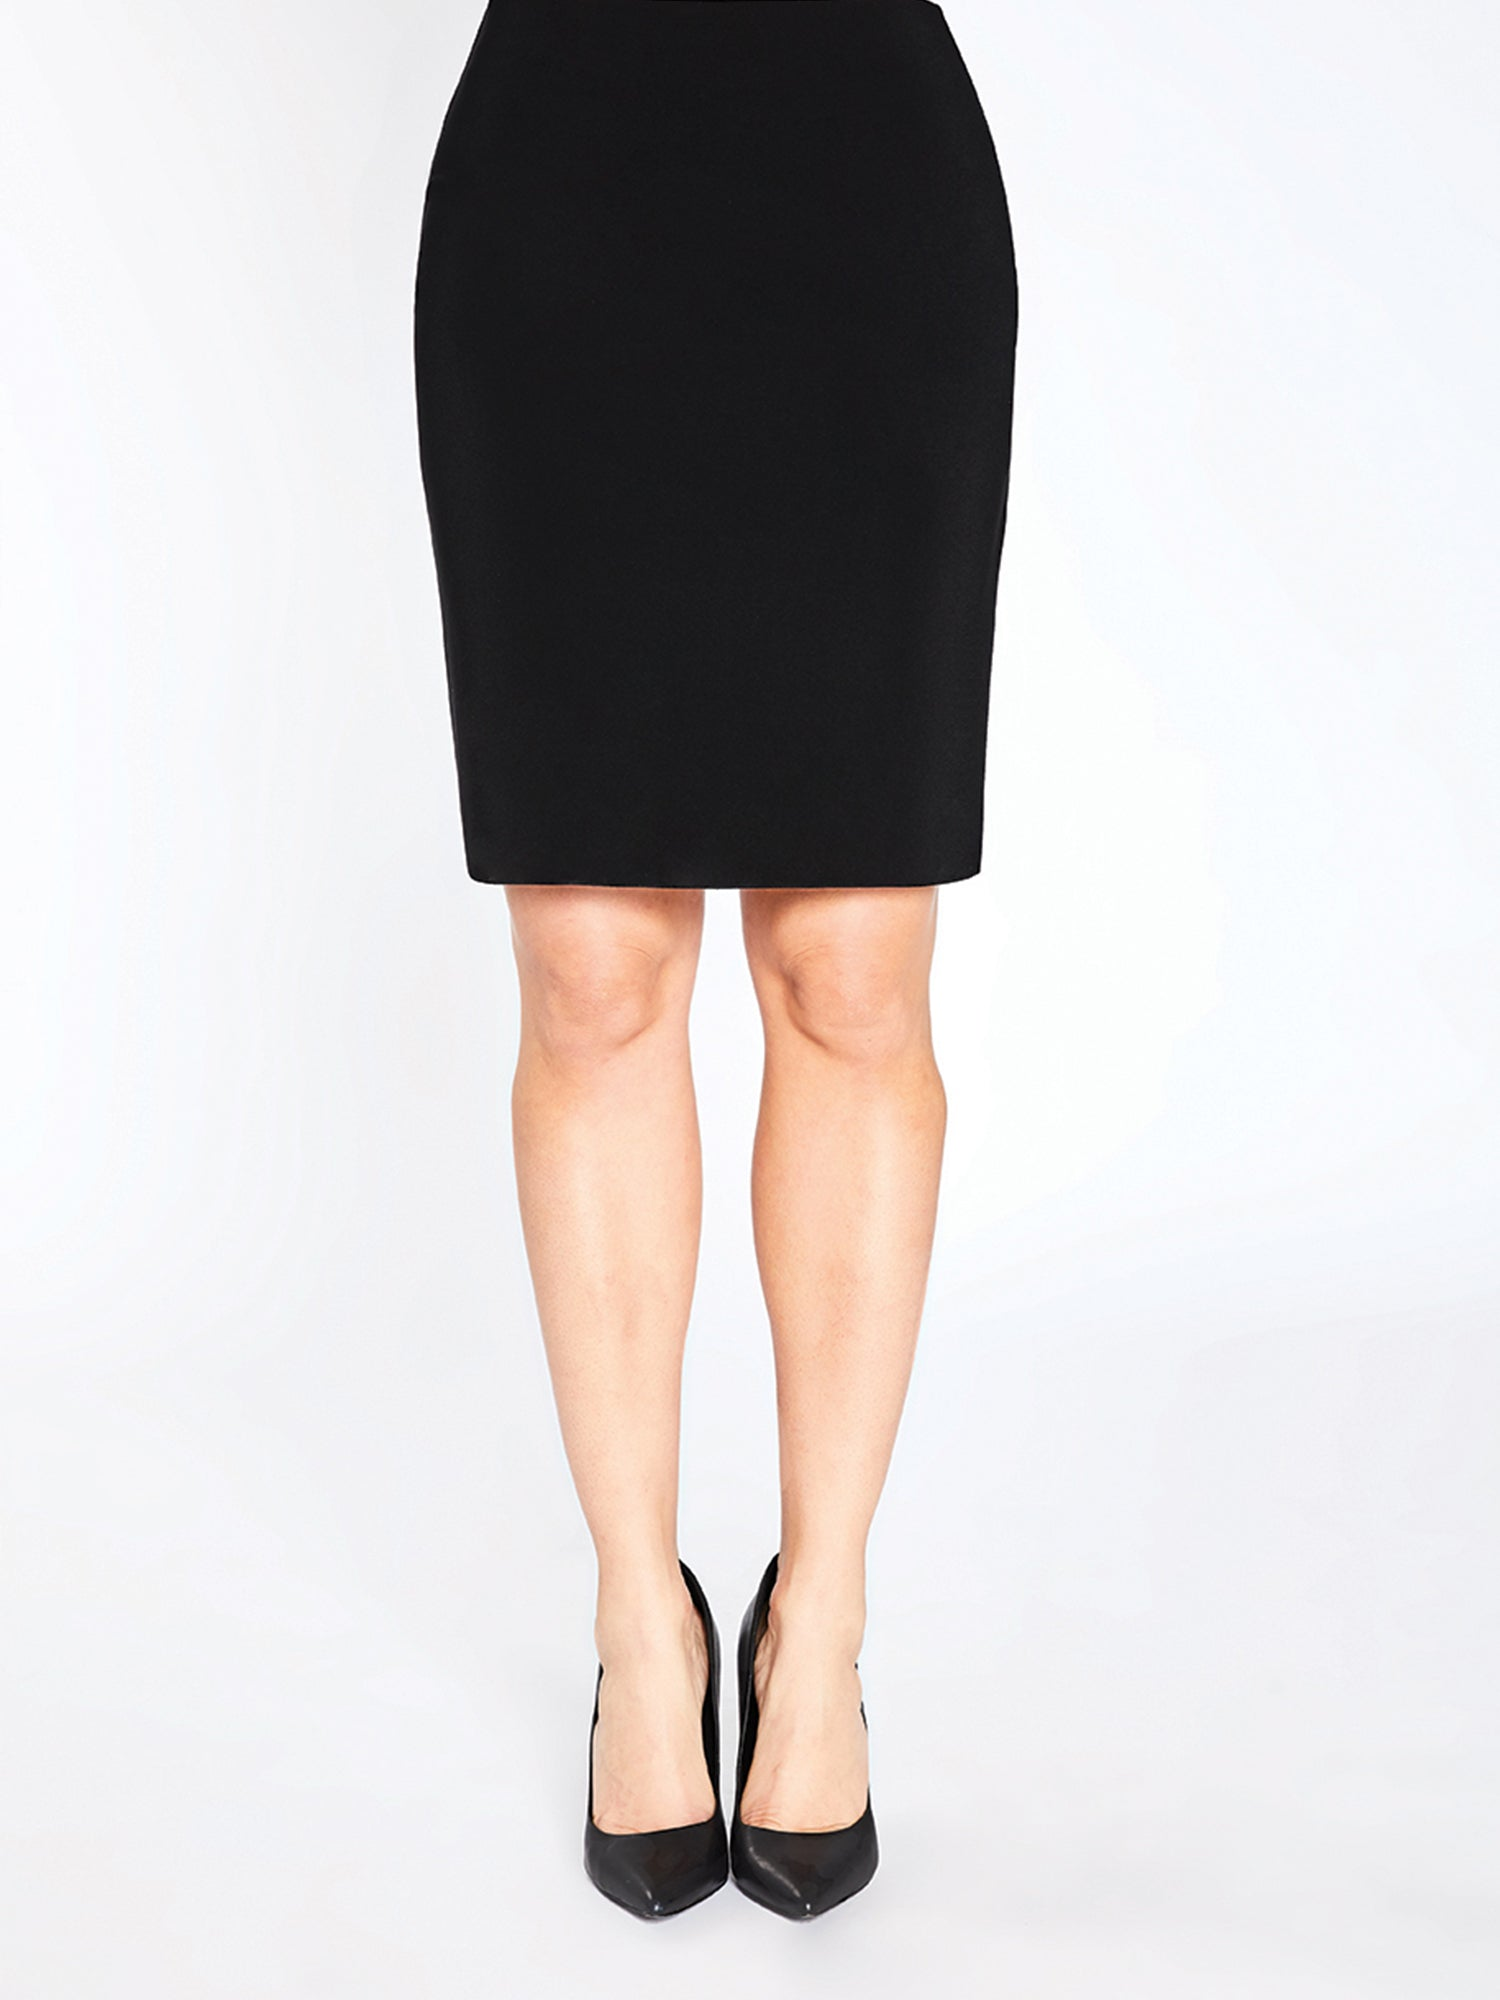 Sympli 2021, 2634S Tube Skirt Short